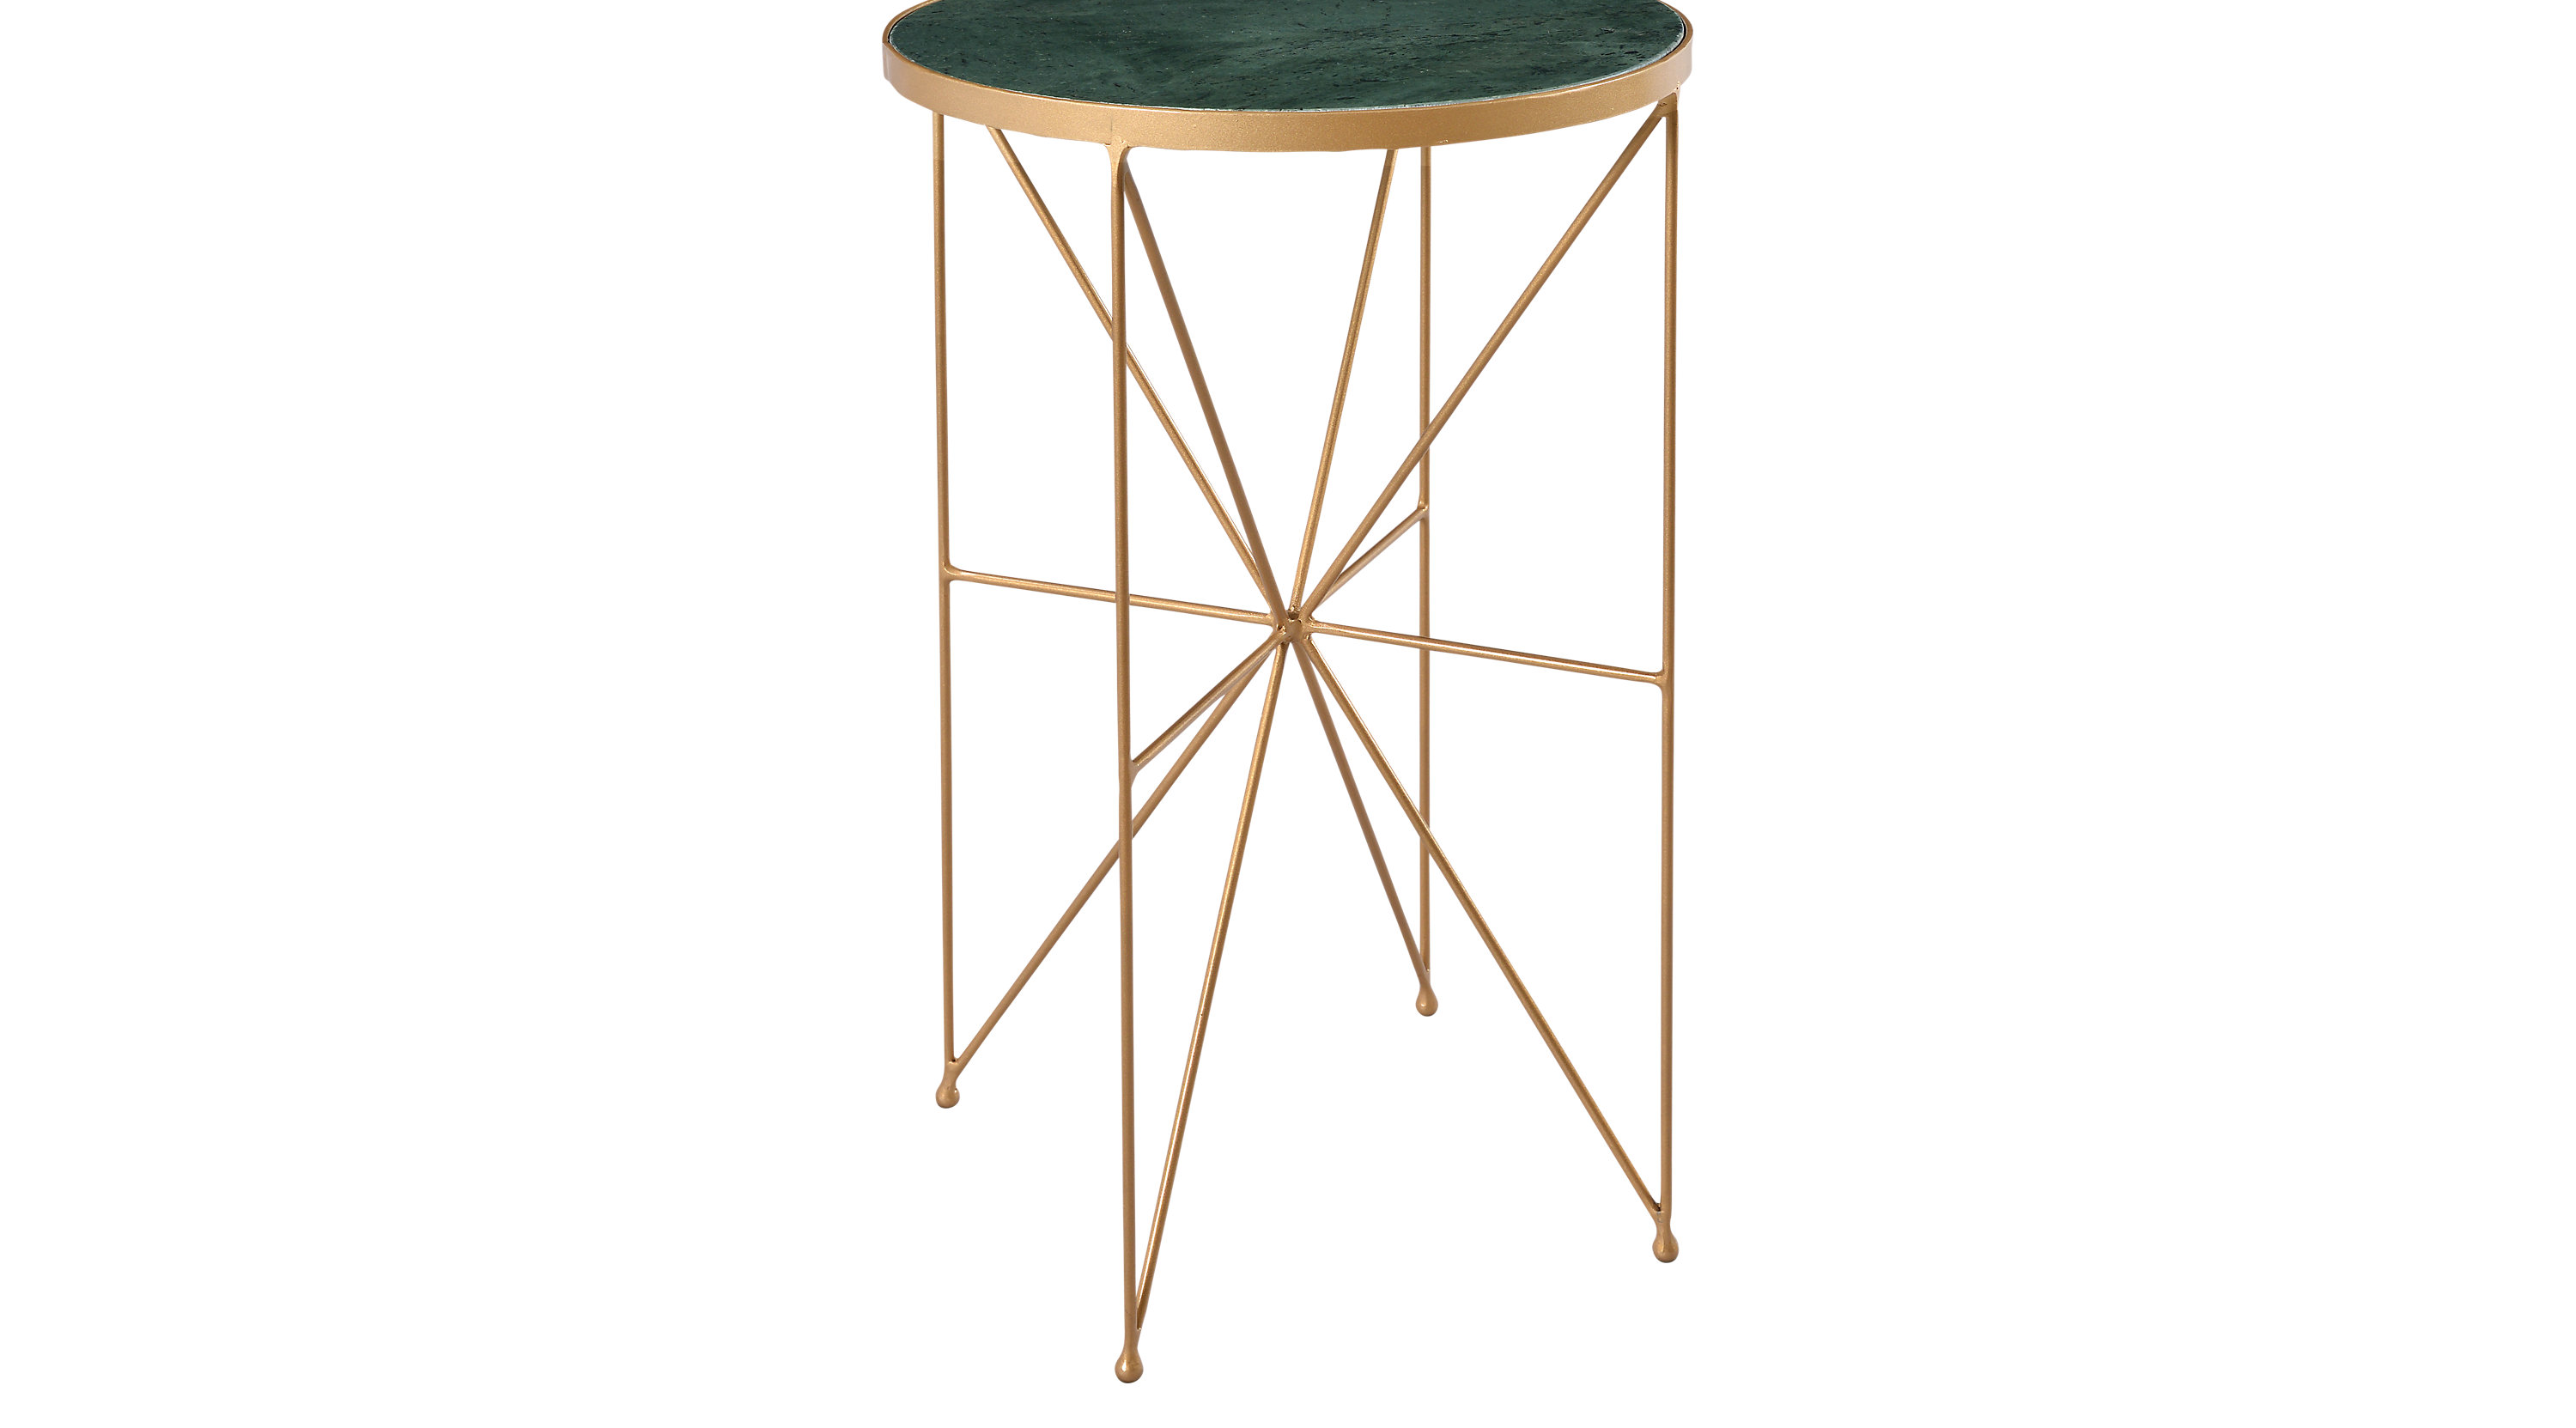 kimana gold accent table distressed gray end metal and wood round nautical island lighting vitra chair replica mid century modern cocktail concrete top outdoor cement base deck